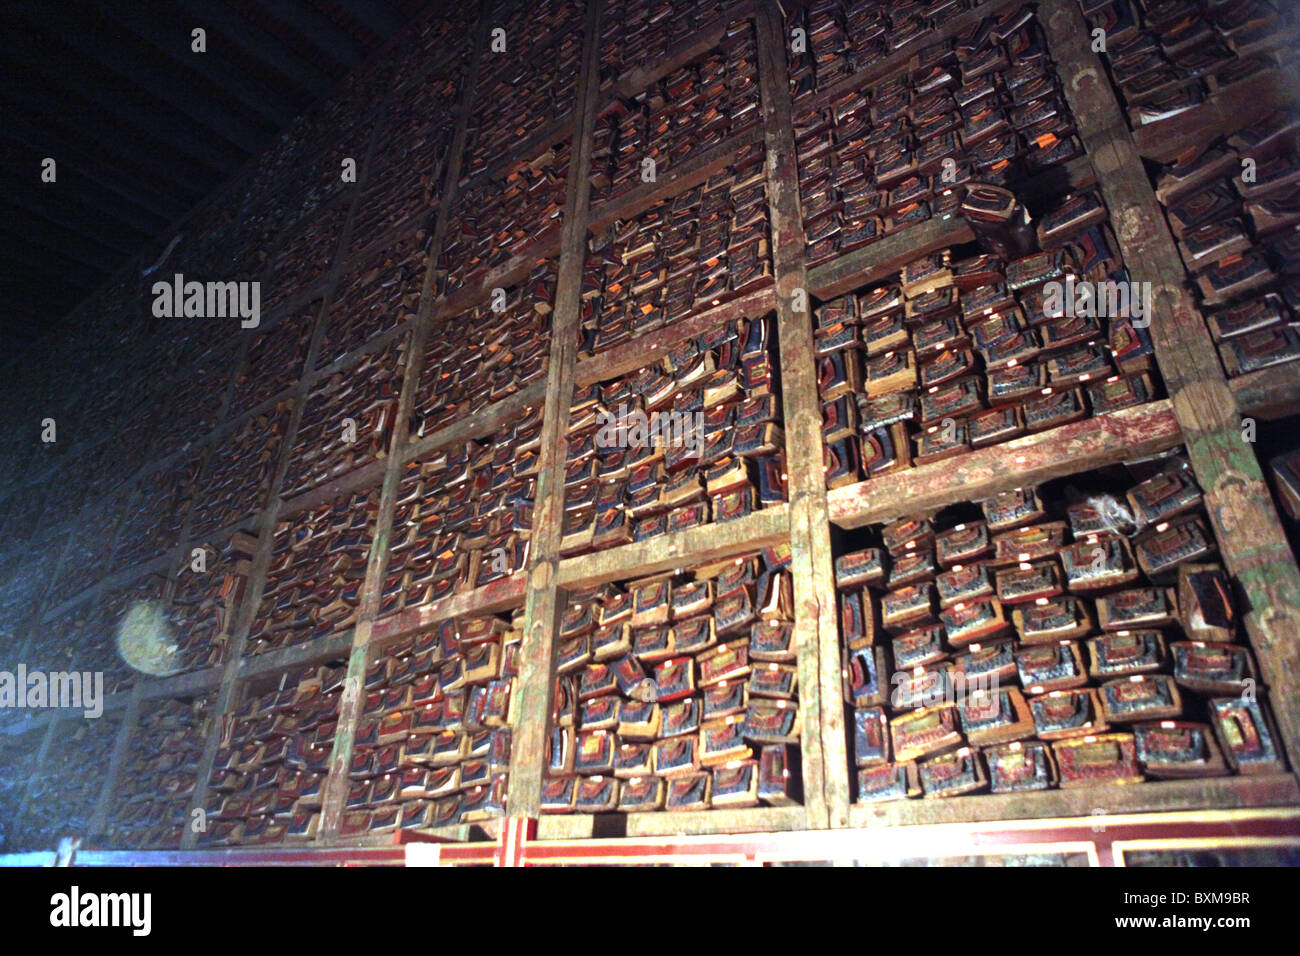 Religious scripts stacked high at The Sakya Monastery, a Buddhist monastry about 127km west of Shigatse in Tibet. - Stock Image